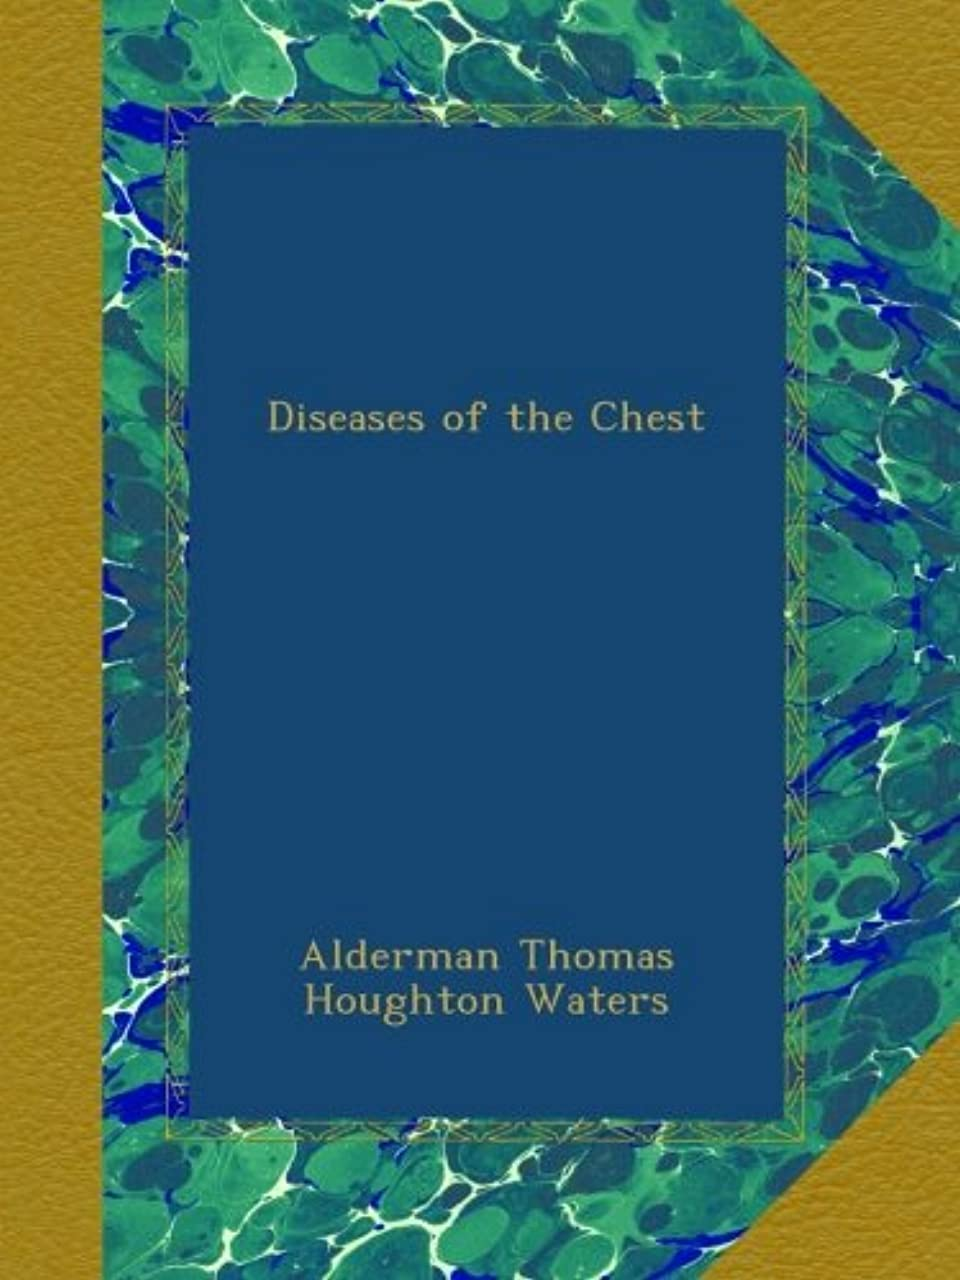 Diseases of the Chest